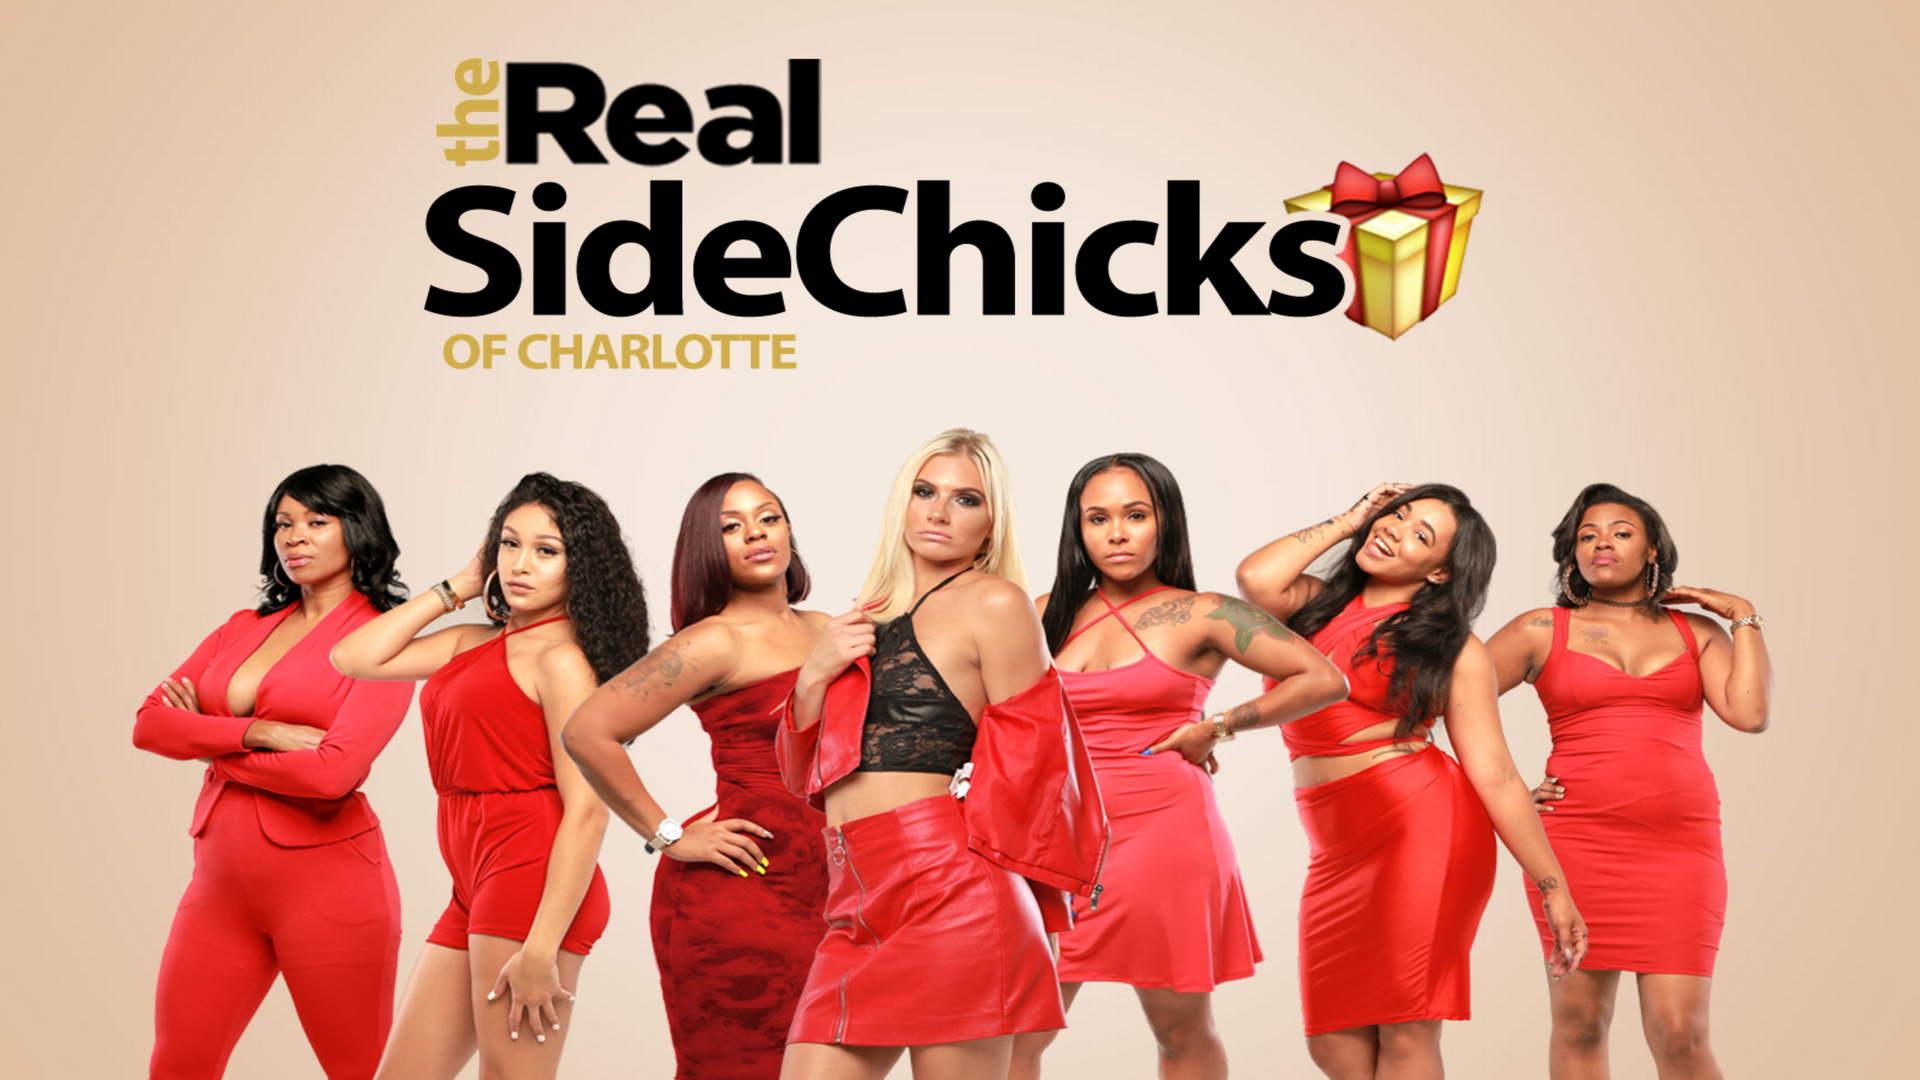 'The Real Side Chicks Of Charlotte' Looks Good, But Is It Real?